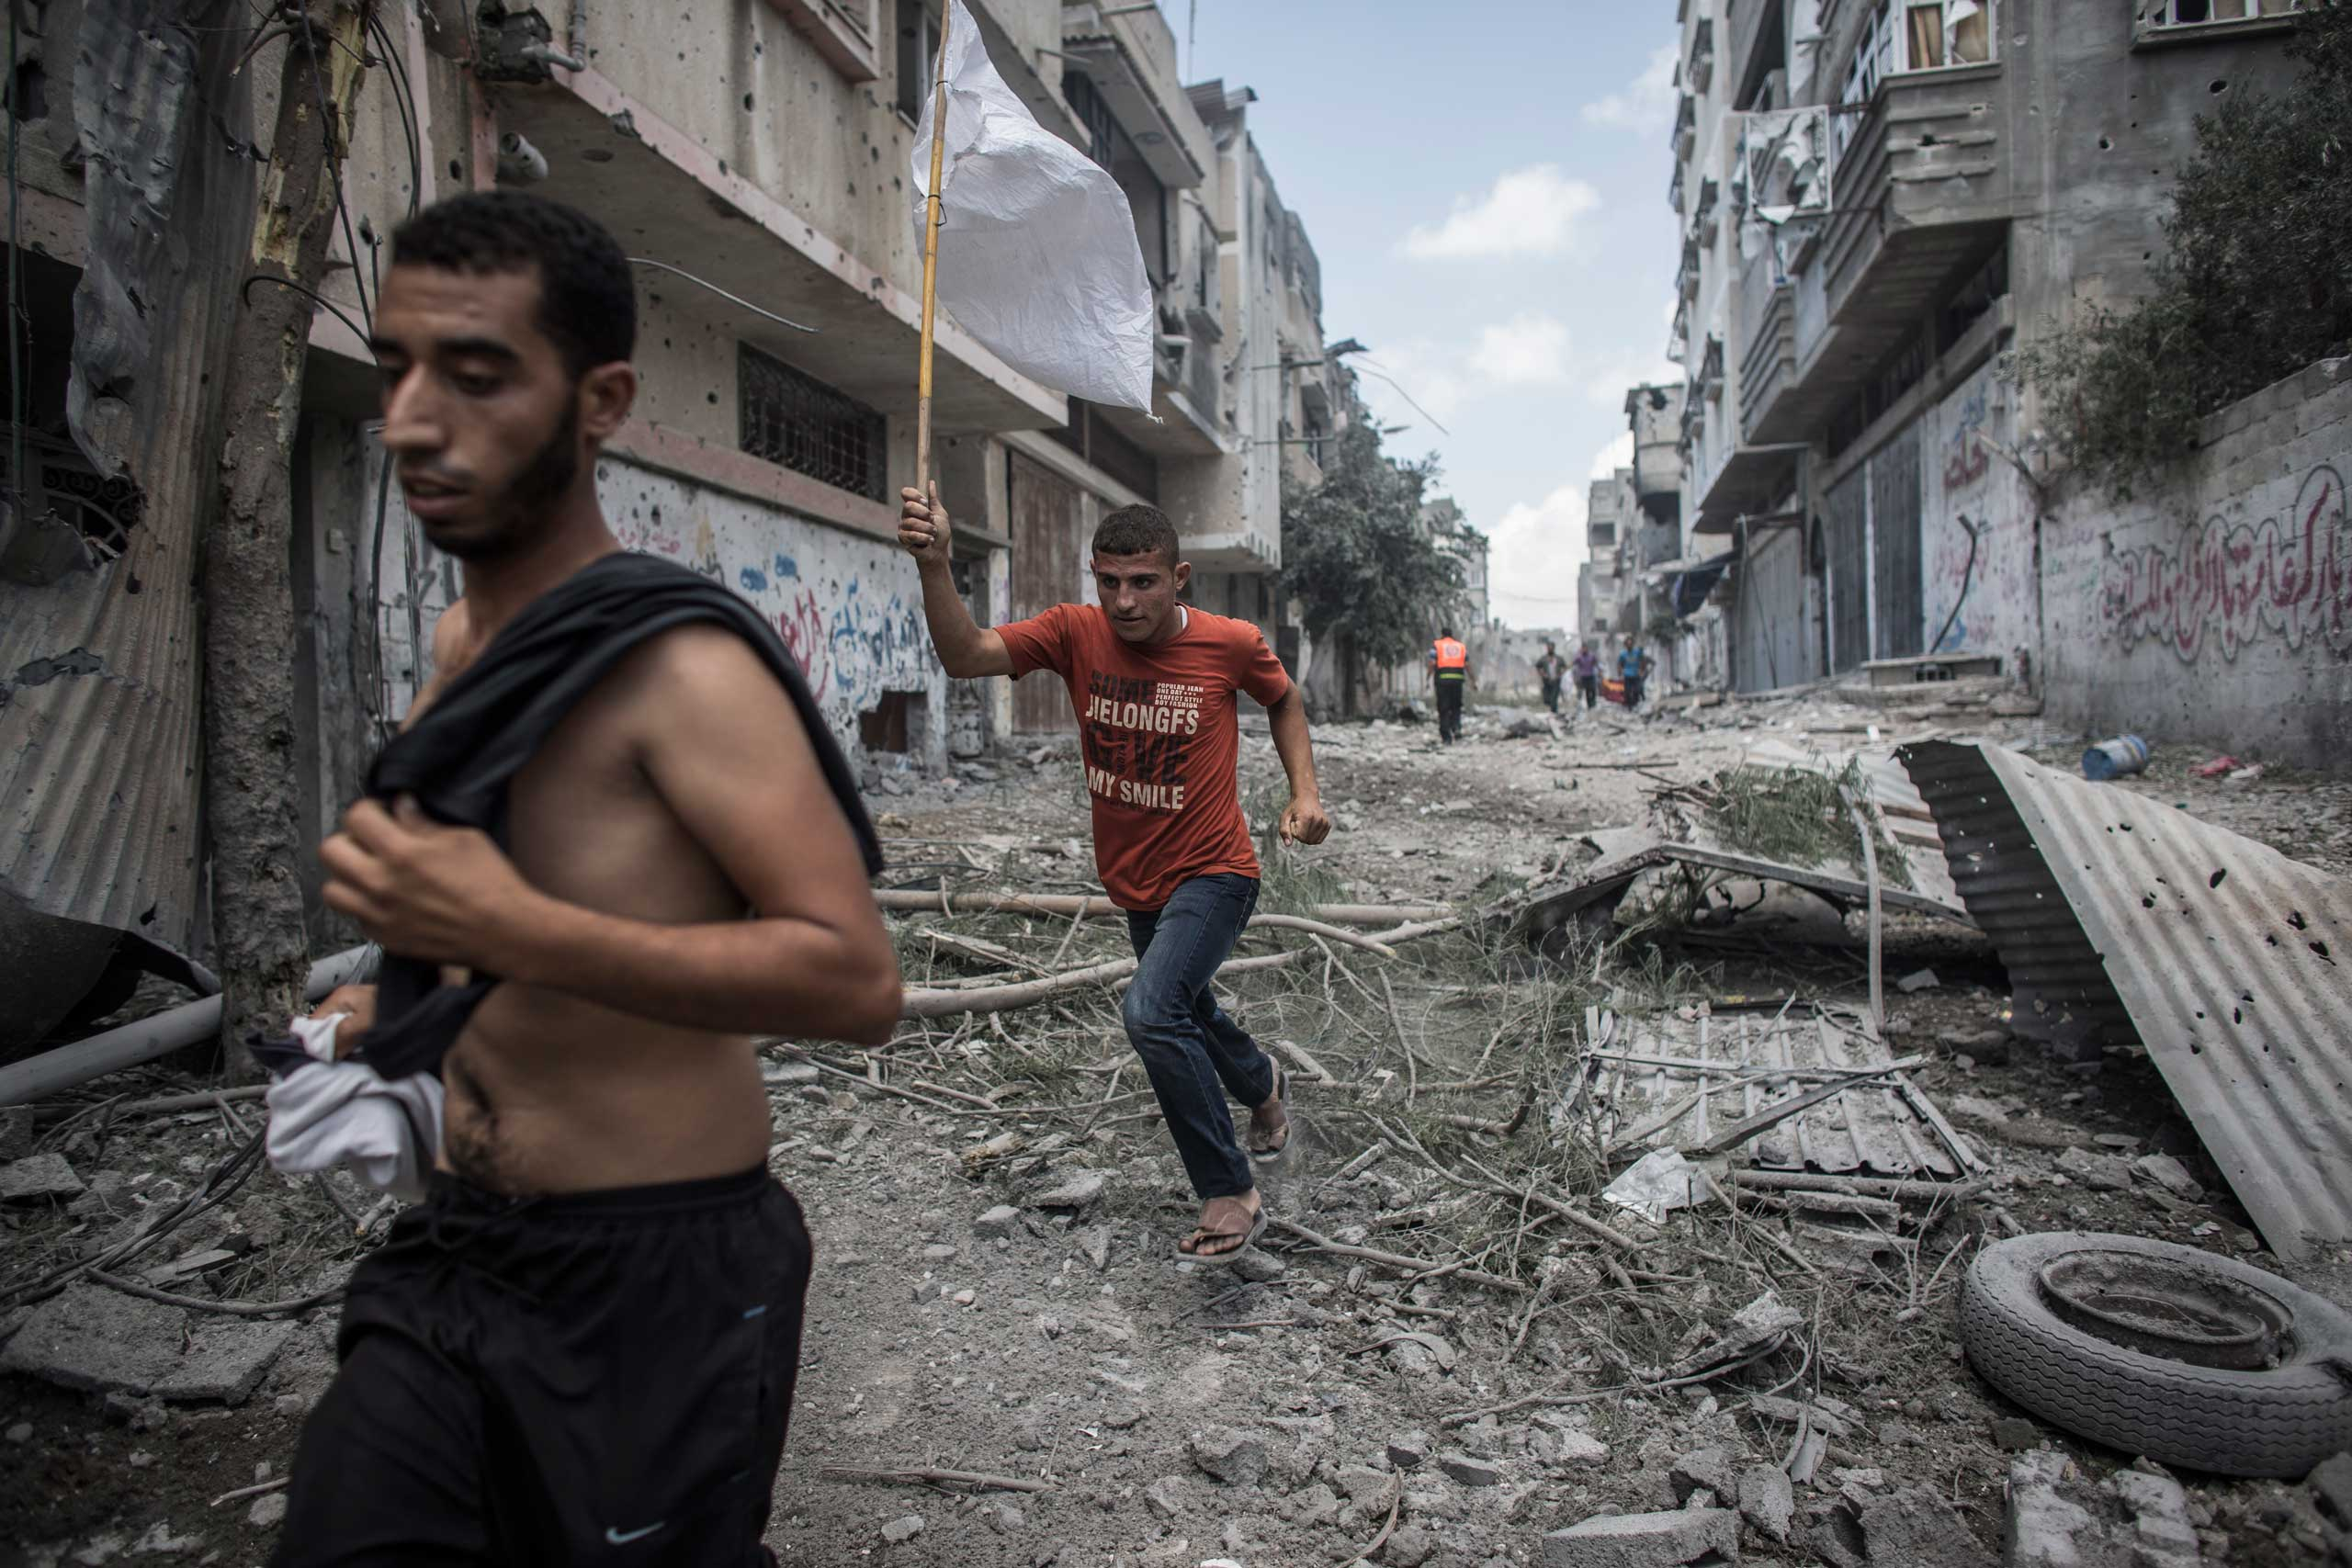 Two Palestinian men carry a white flag as they flee their homes during a brief humanitarian cease-fire in Shejaiya, in east Gaza City, July 20, 2014.